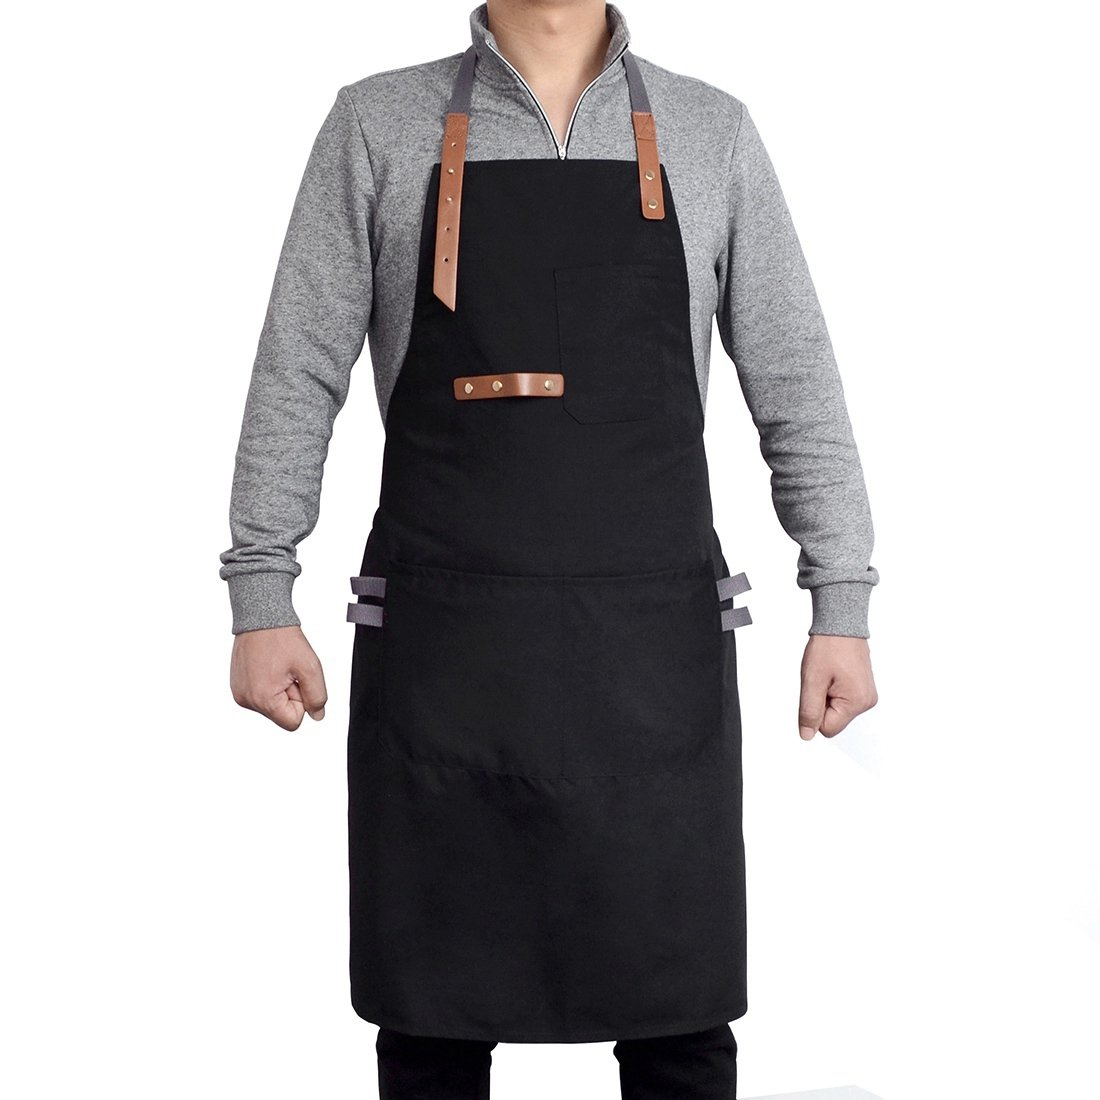 Pinji Canvas Aprons for Men and Women Adjustable